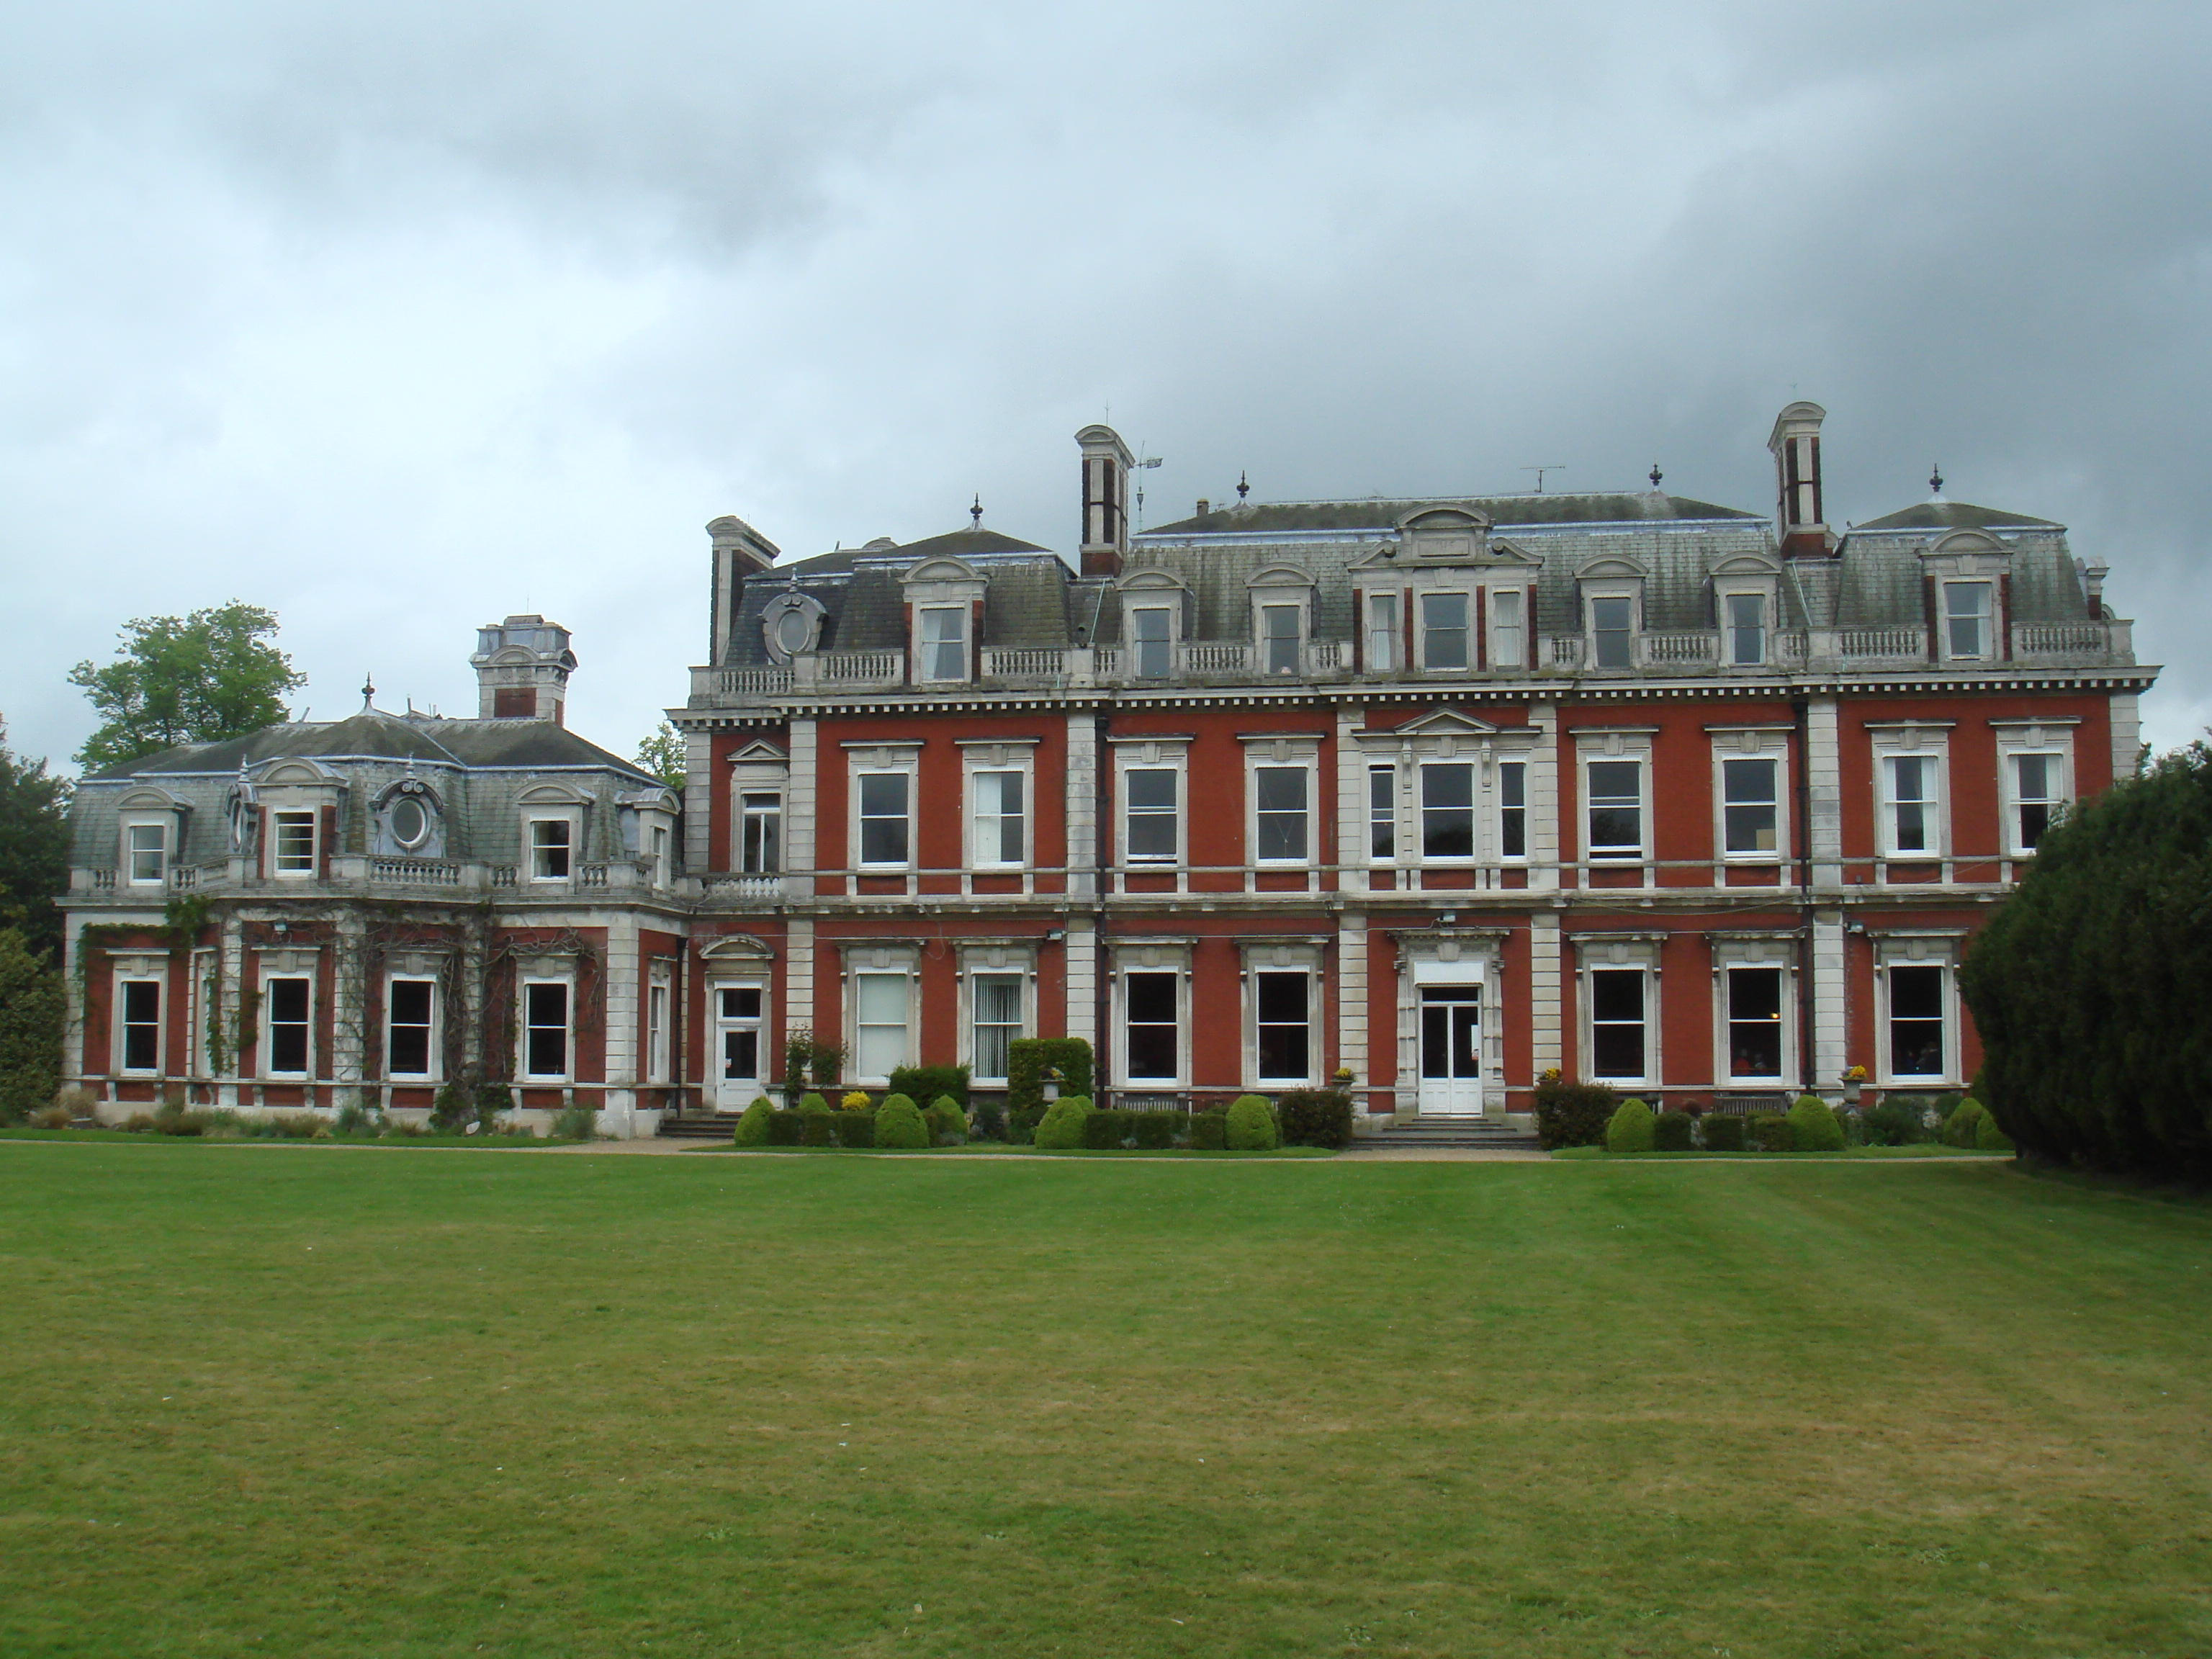 Tring Mansion built in 1682 during the reign of King Charles II by Sir Christopher Wren for Sir Henry Guy later purchased by Sir William Gore in 1705 then by Baron Lionel de Rothschild in 1872 for the sum of £230,000.